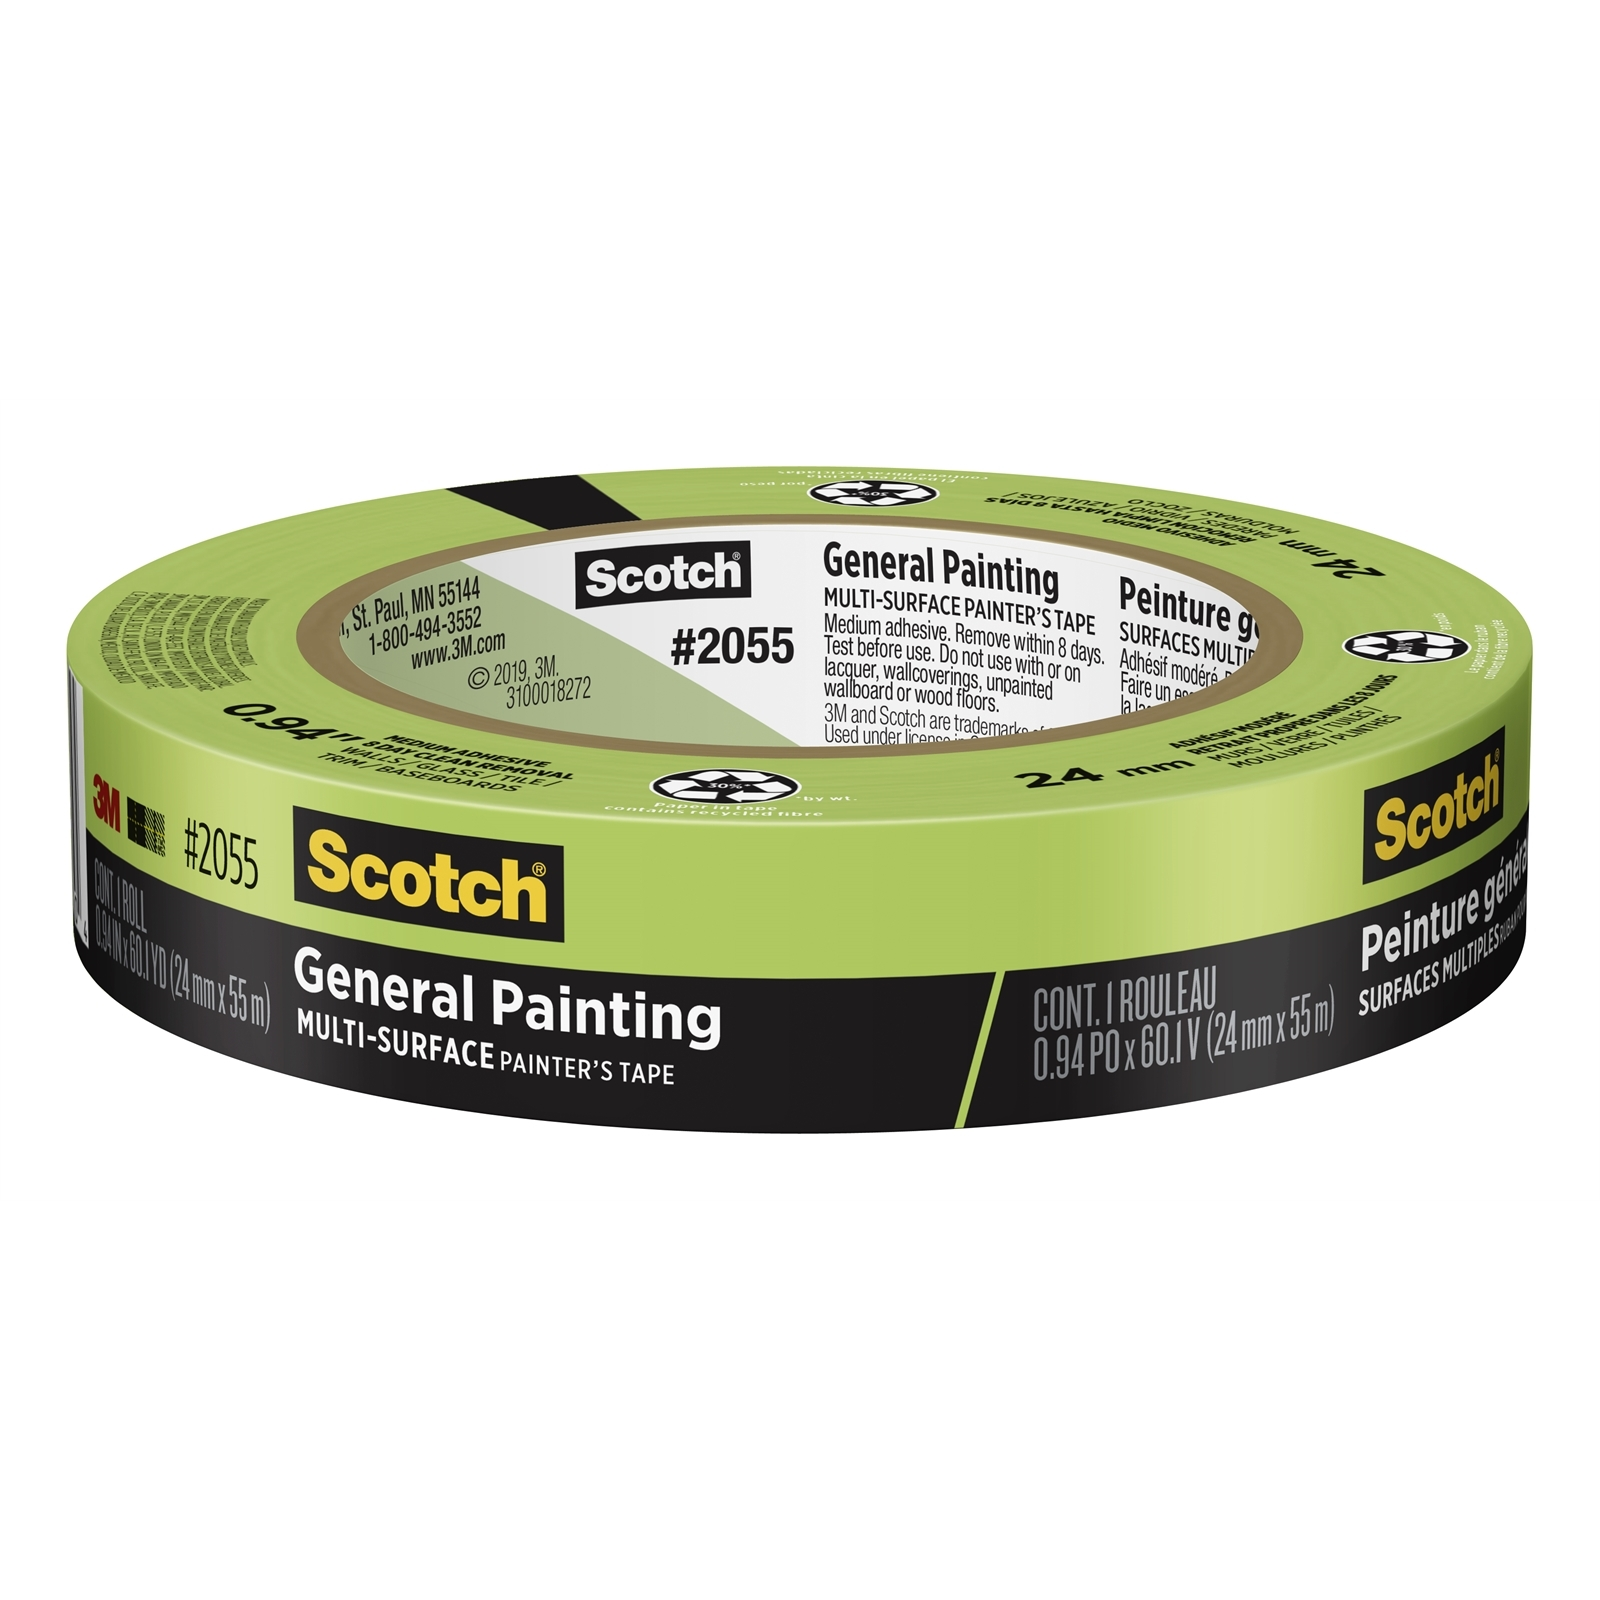 Scotch 24mm x 55m General Painting Painter's Masking Tape